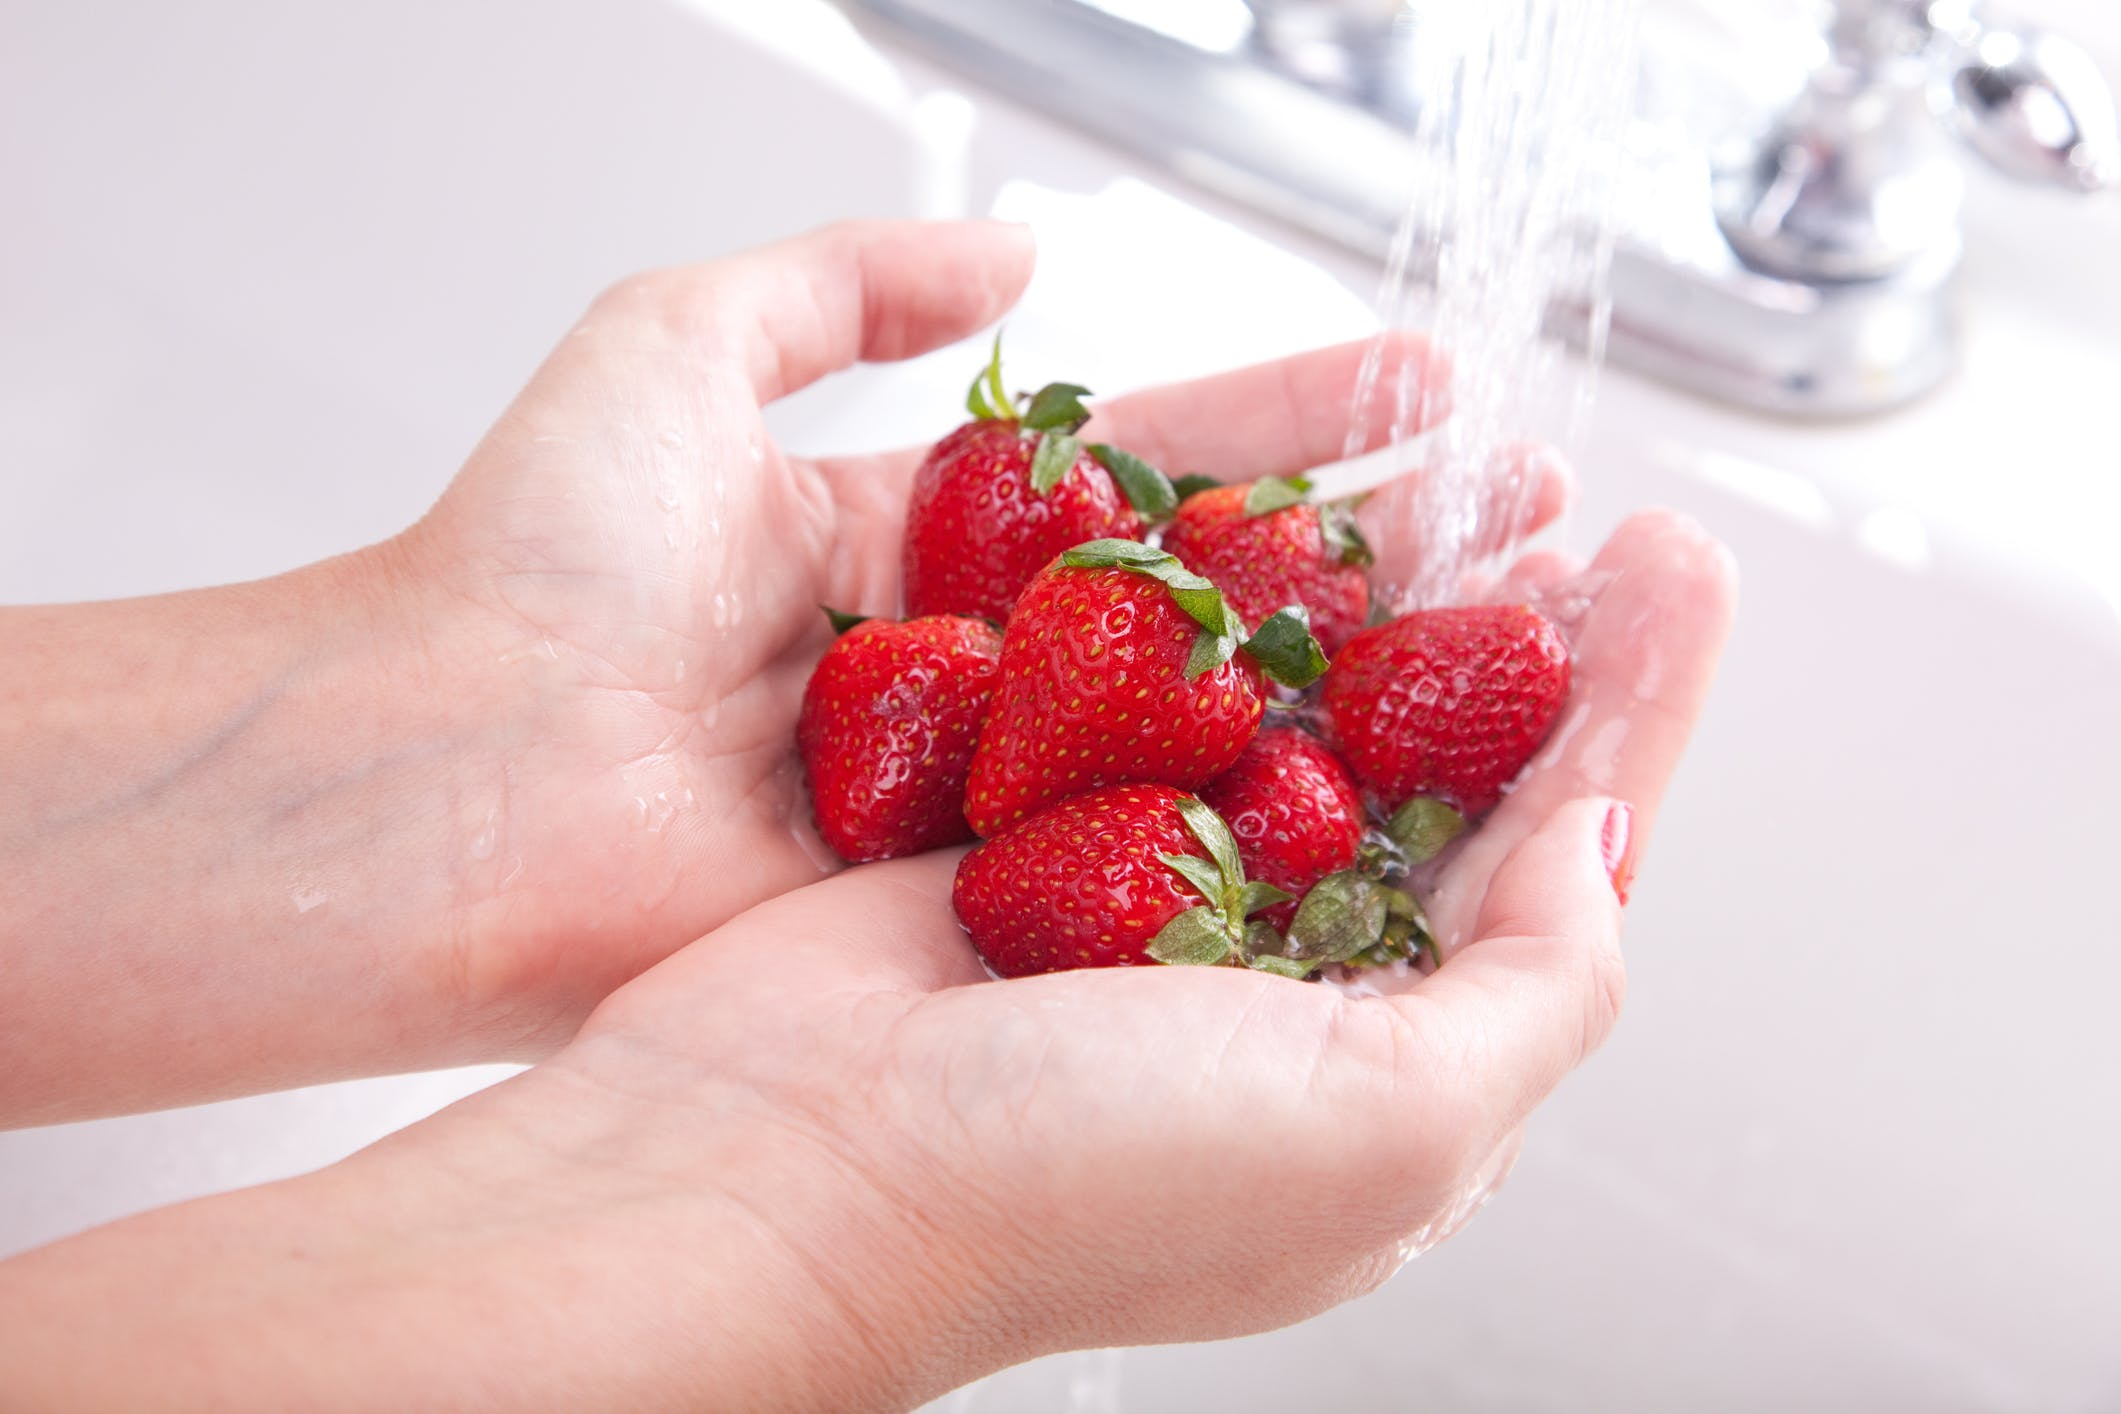 Do You Rinse Fresh Fruits and Veggies?